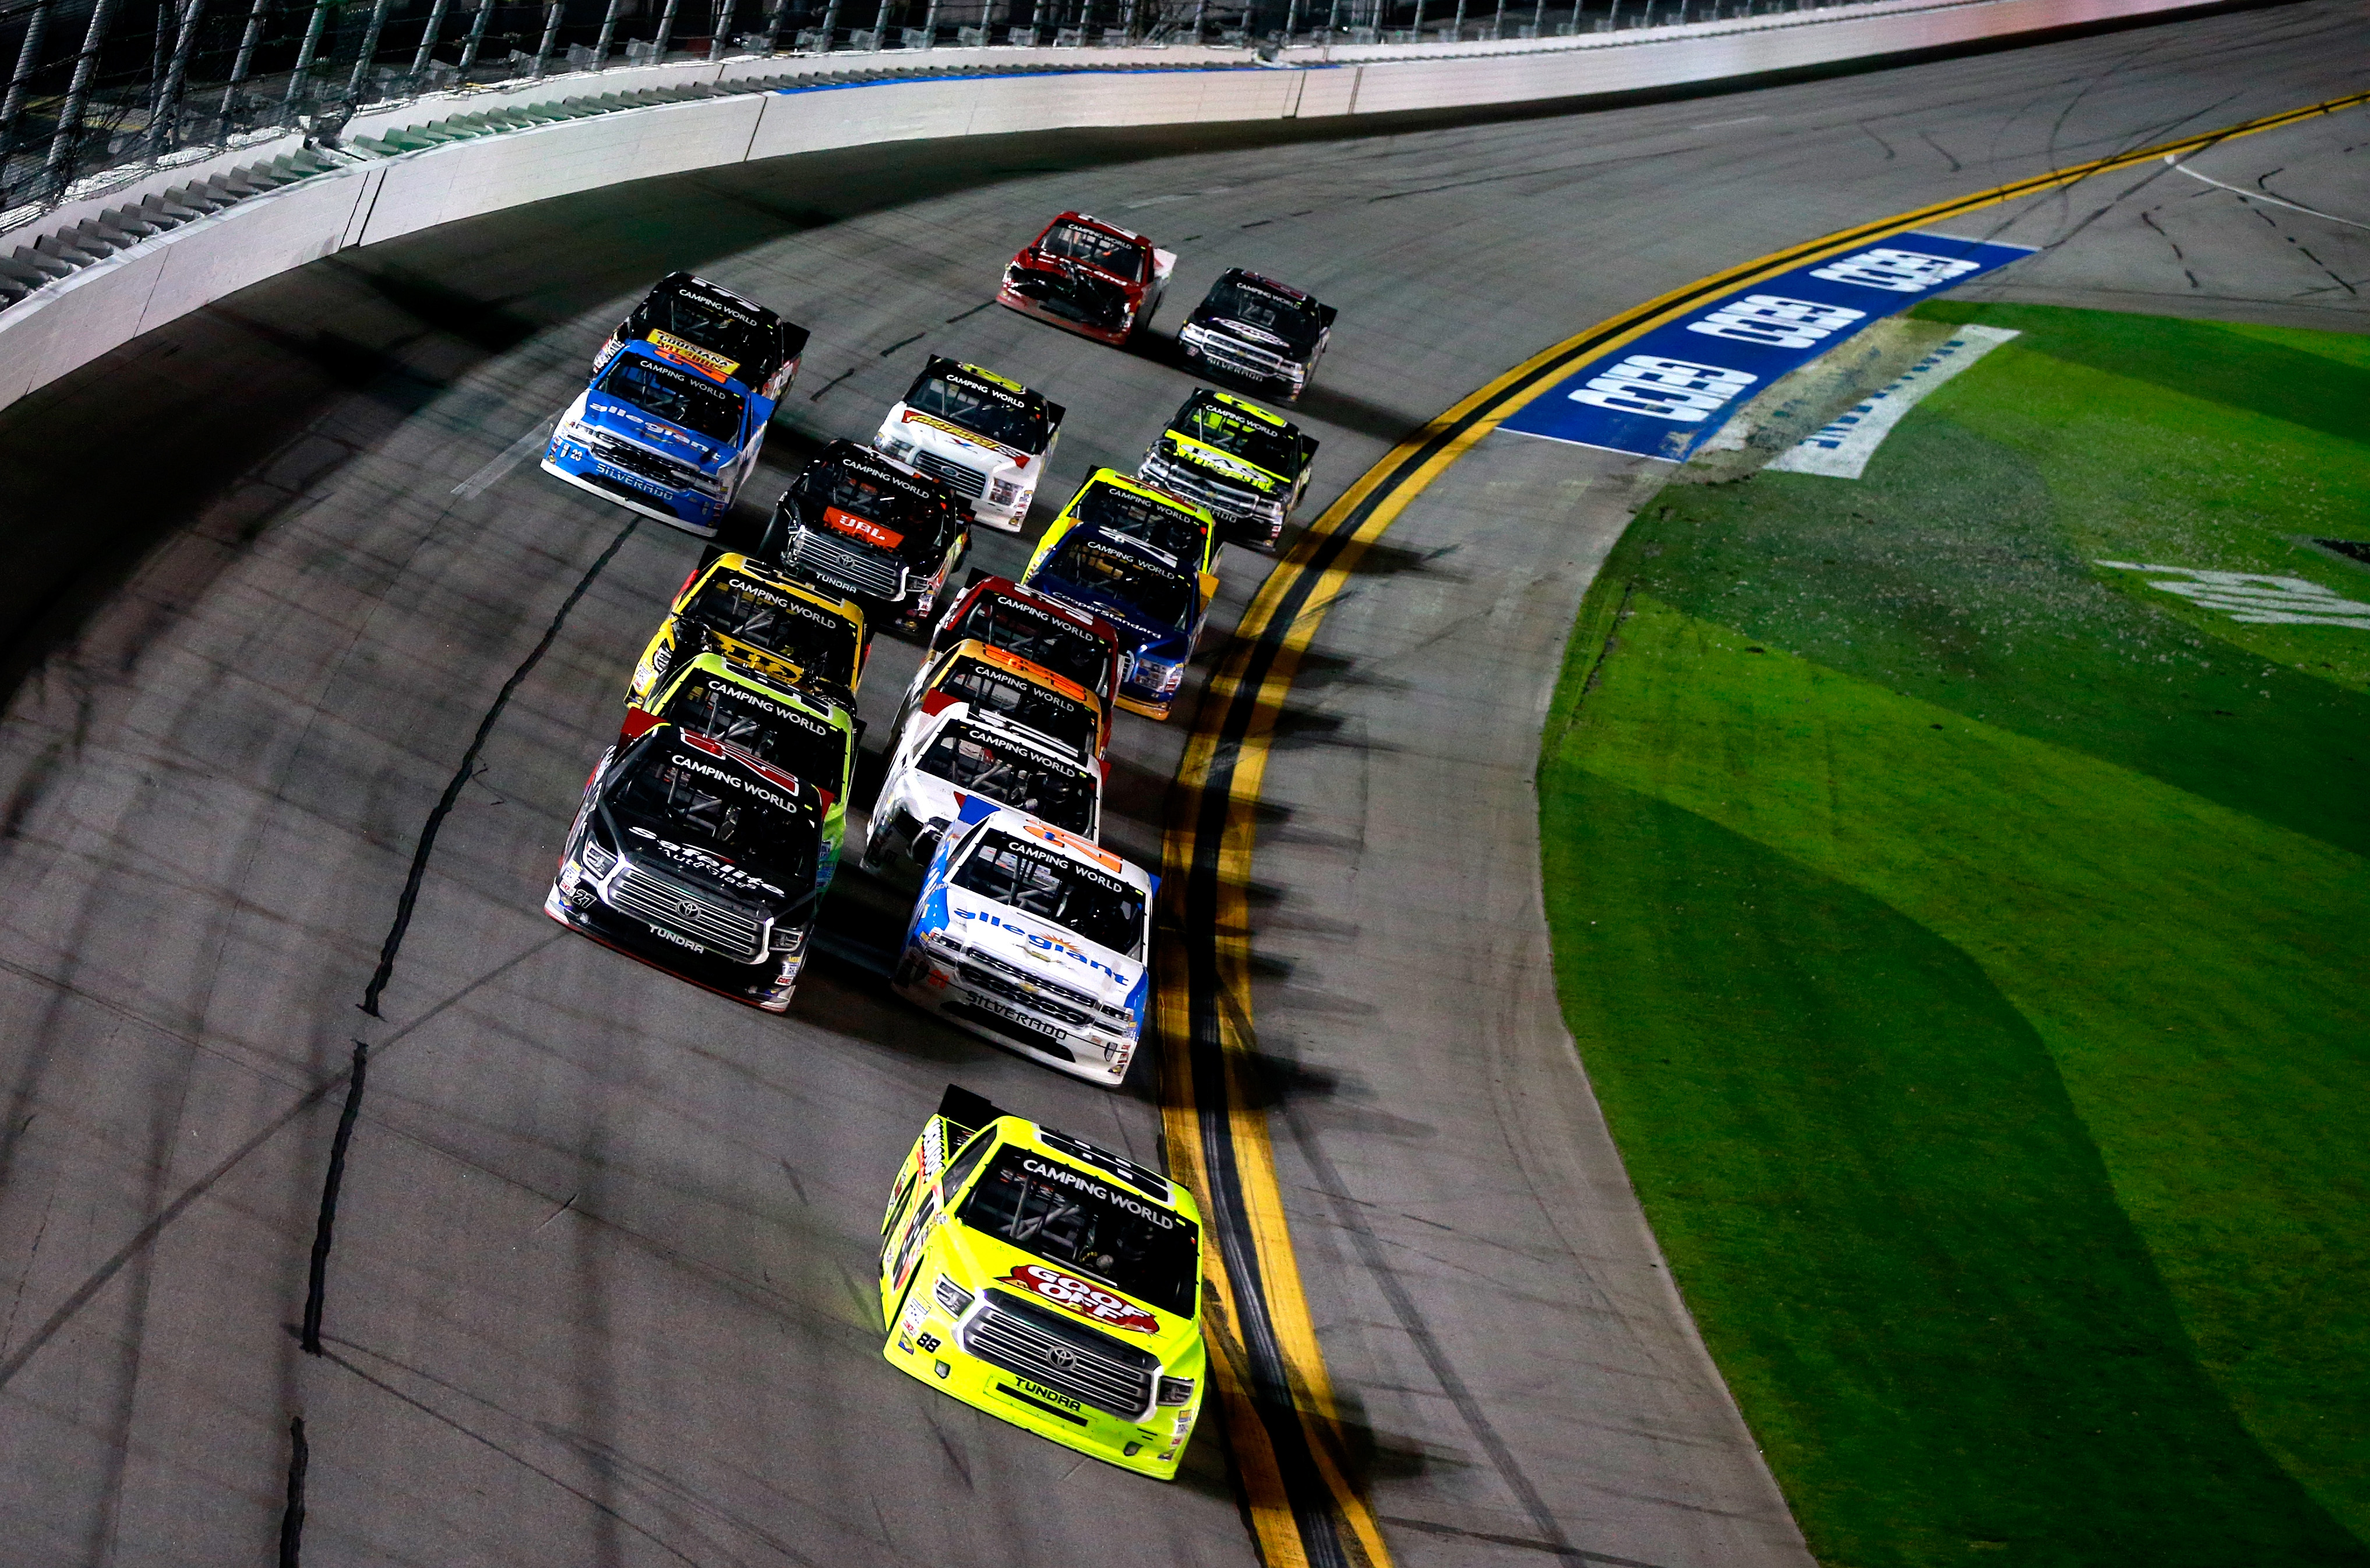 Matt Crafton (No. 88) leads a pack of trucks during the NASCAR Camping World Truck Series NextEra Energy Resources 250 at Daytona International Speedway. (Getty Images)